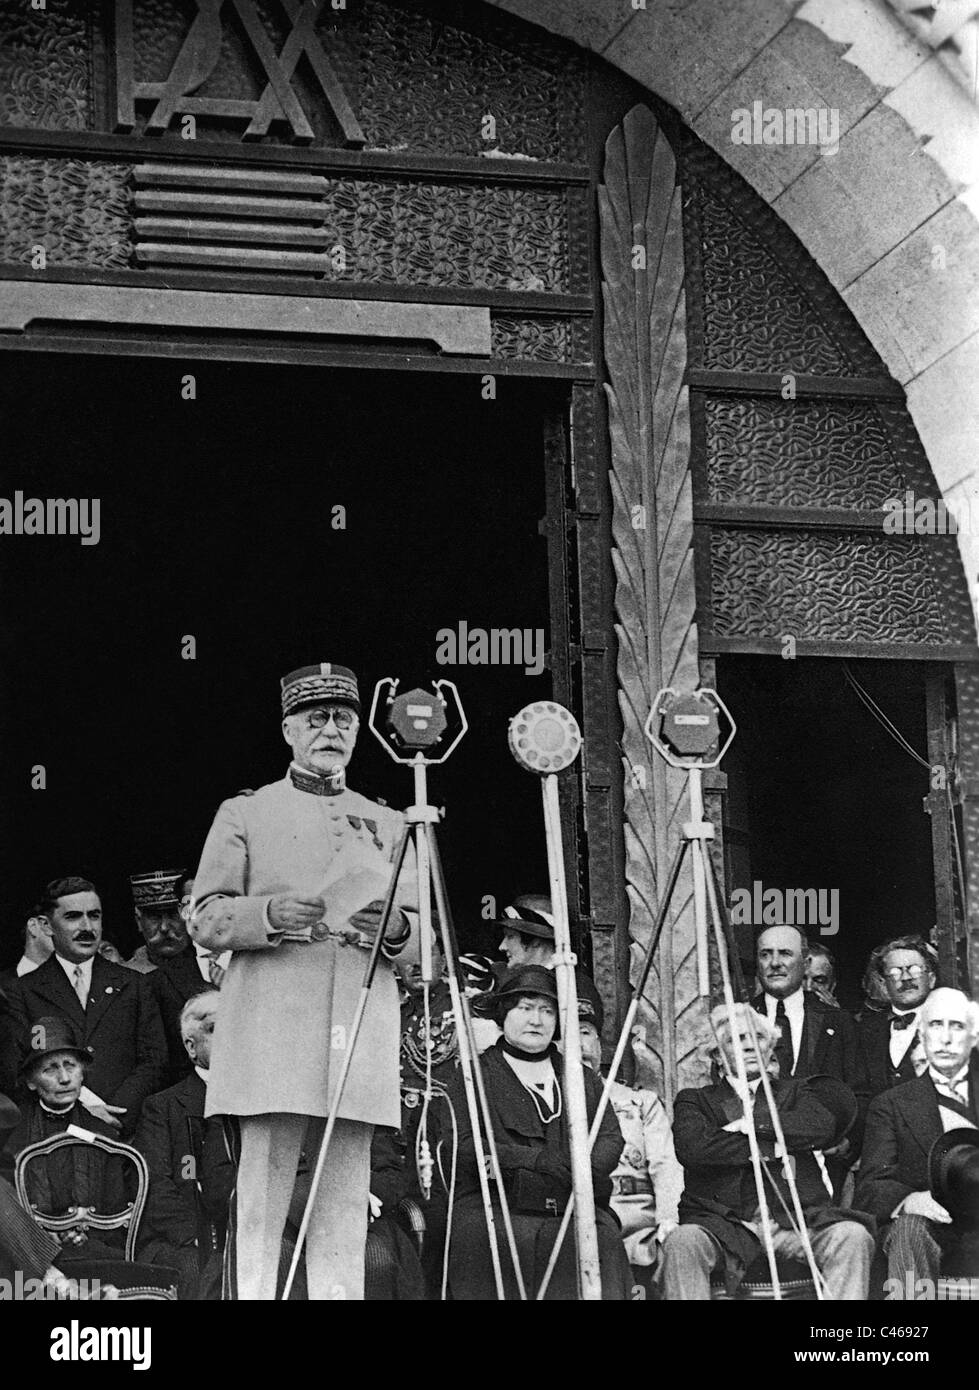 Henri Philippe Petain inaugurates the monument to fallen soldiers at Verdun - Stock Image